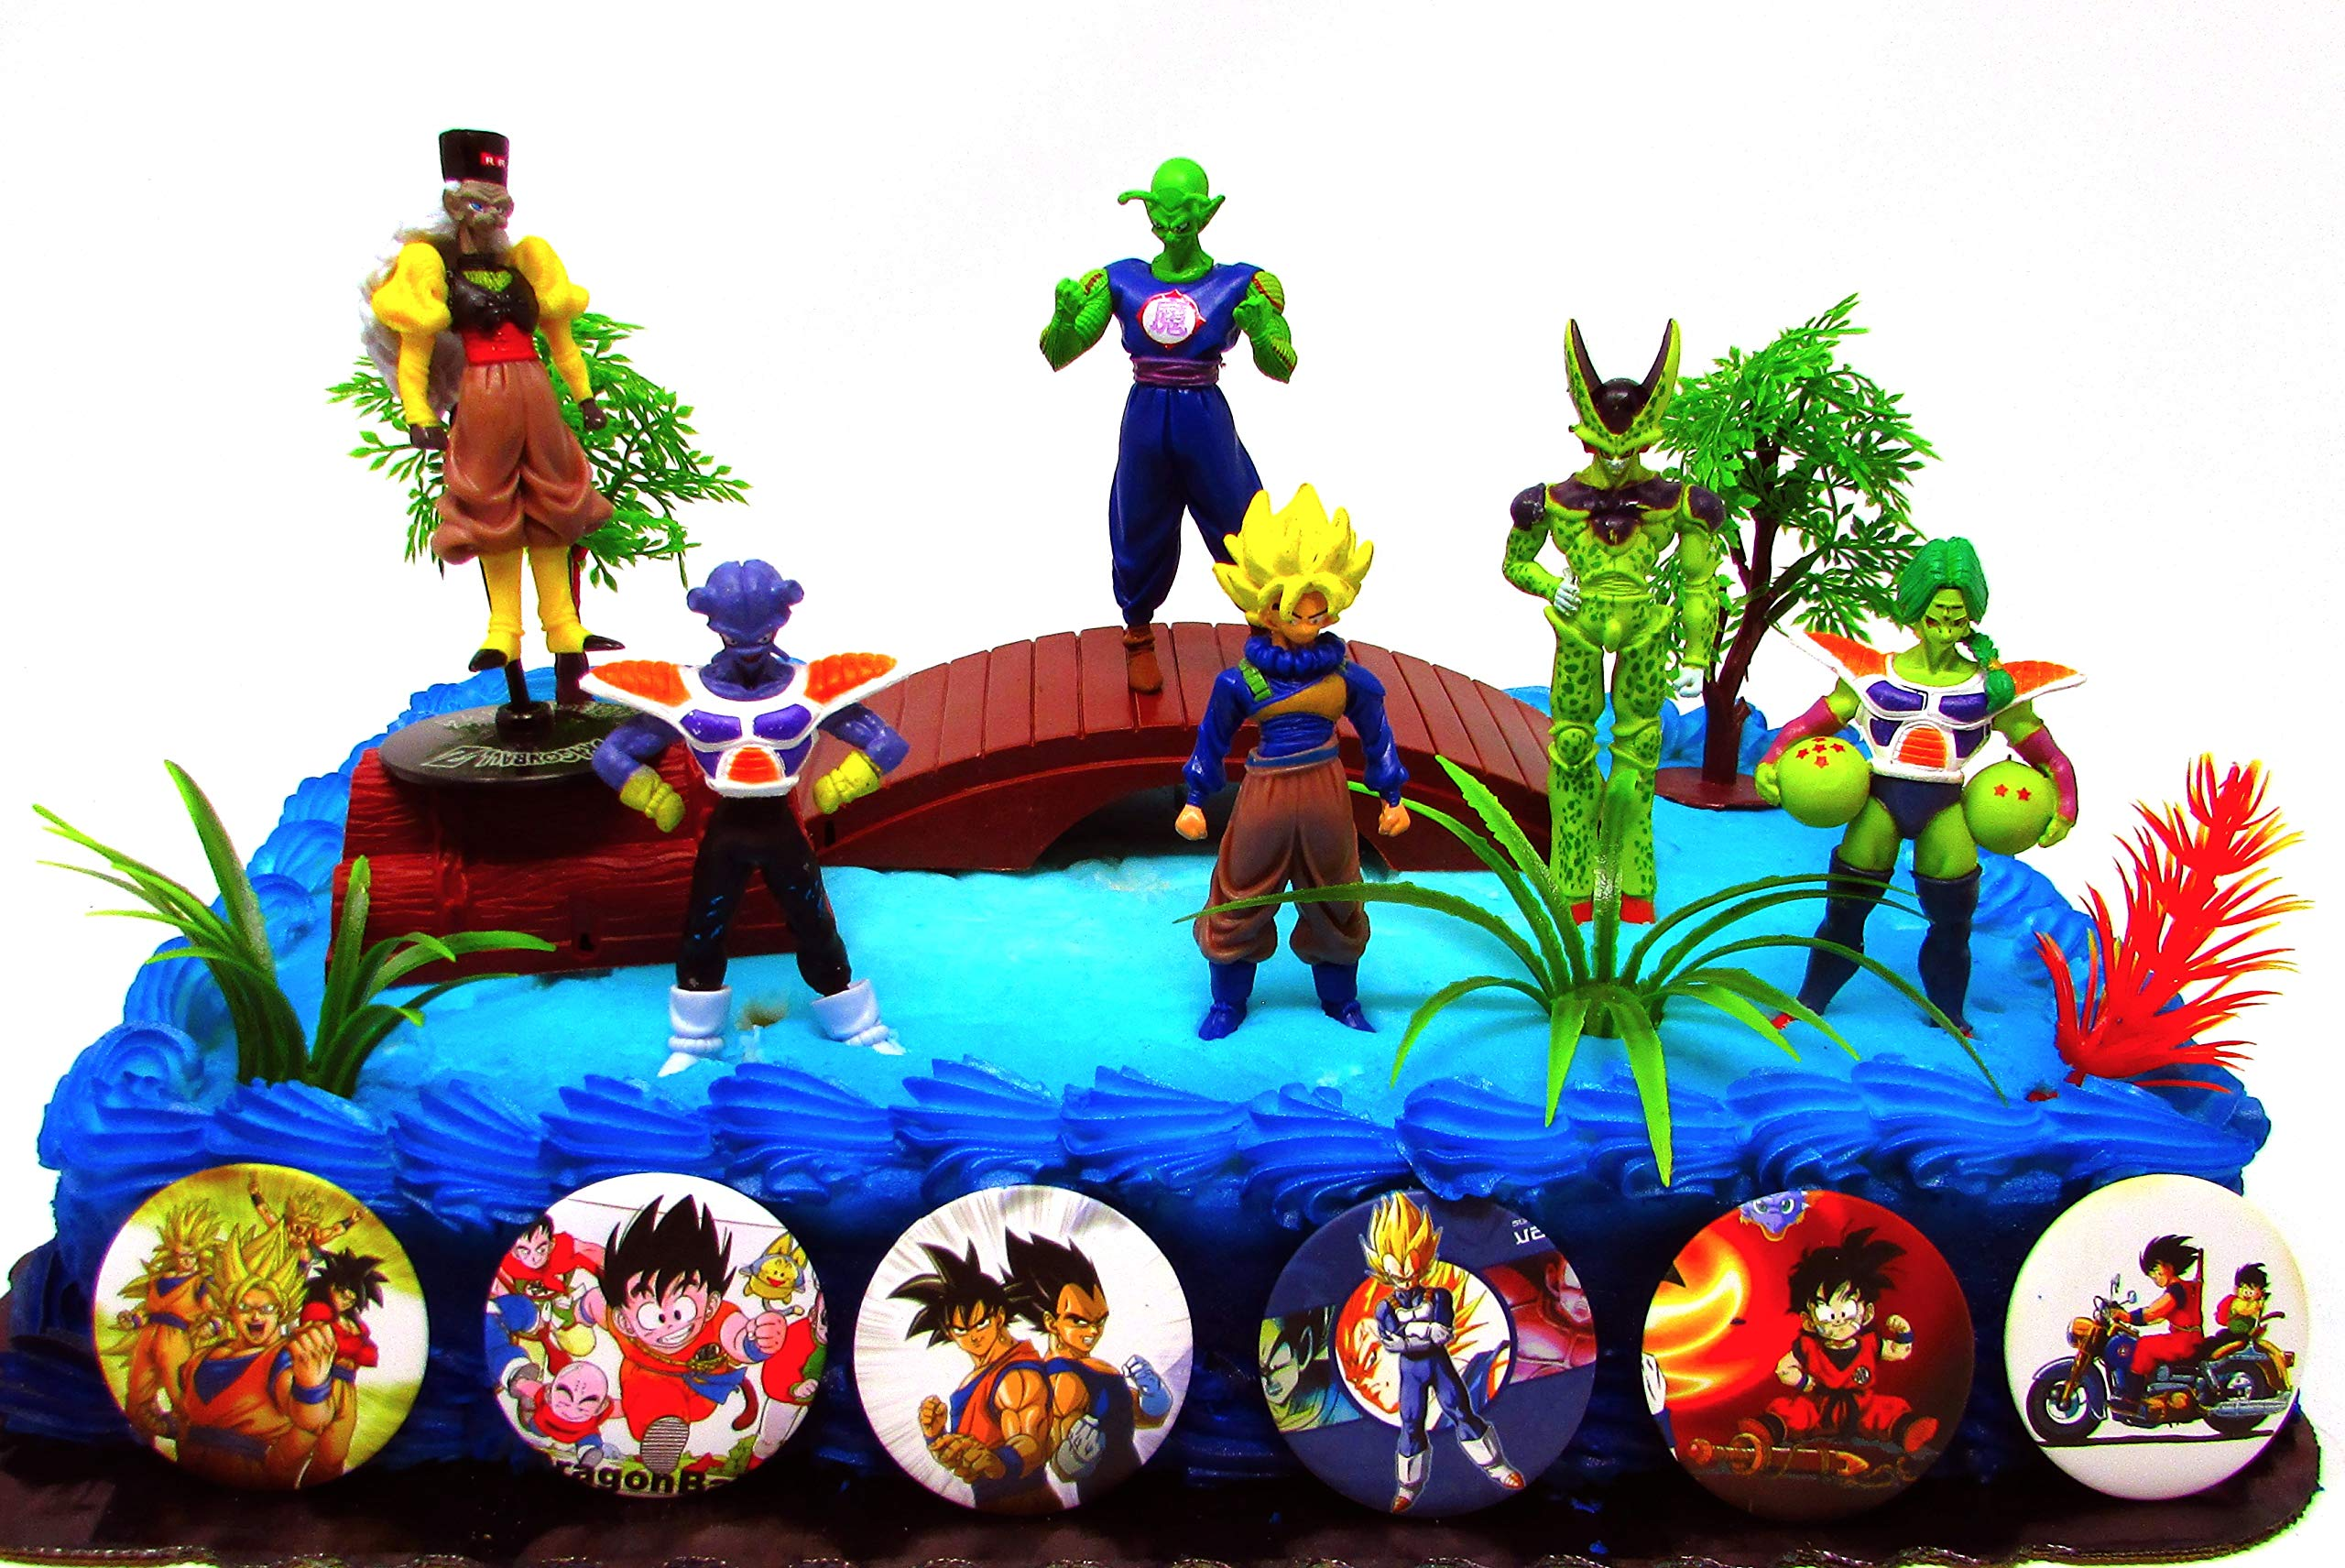 Dragon Ball Z 13 Piece Birthday Cake Topper Featuring 3 Anime Dragon Ball Z Figures and Decorative Accessories by Cake Topper